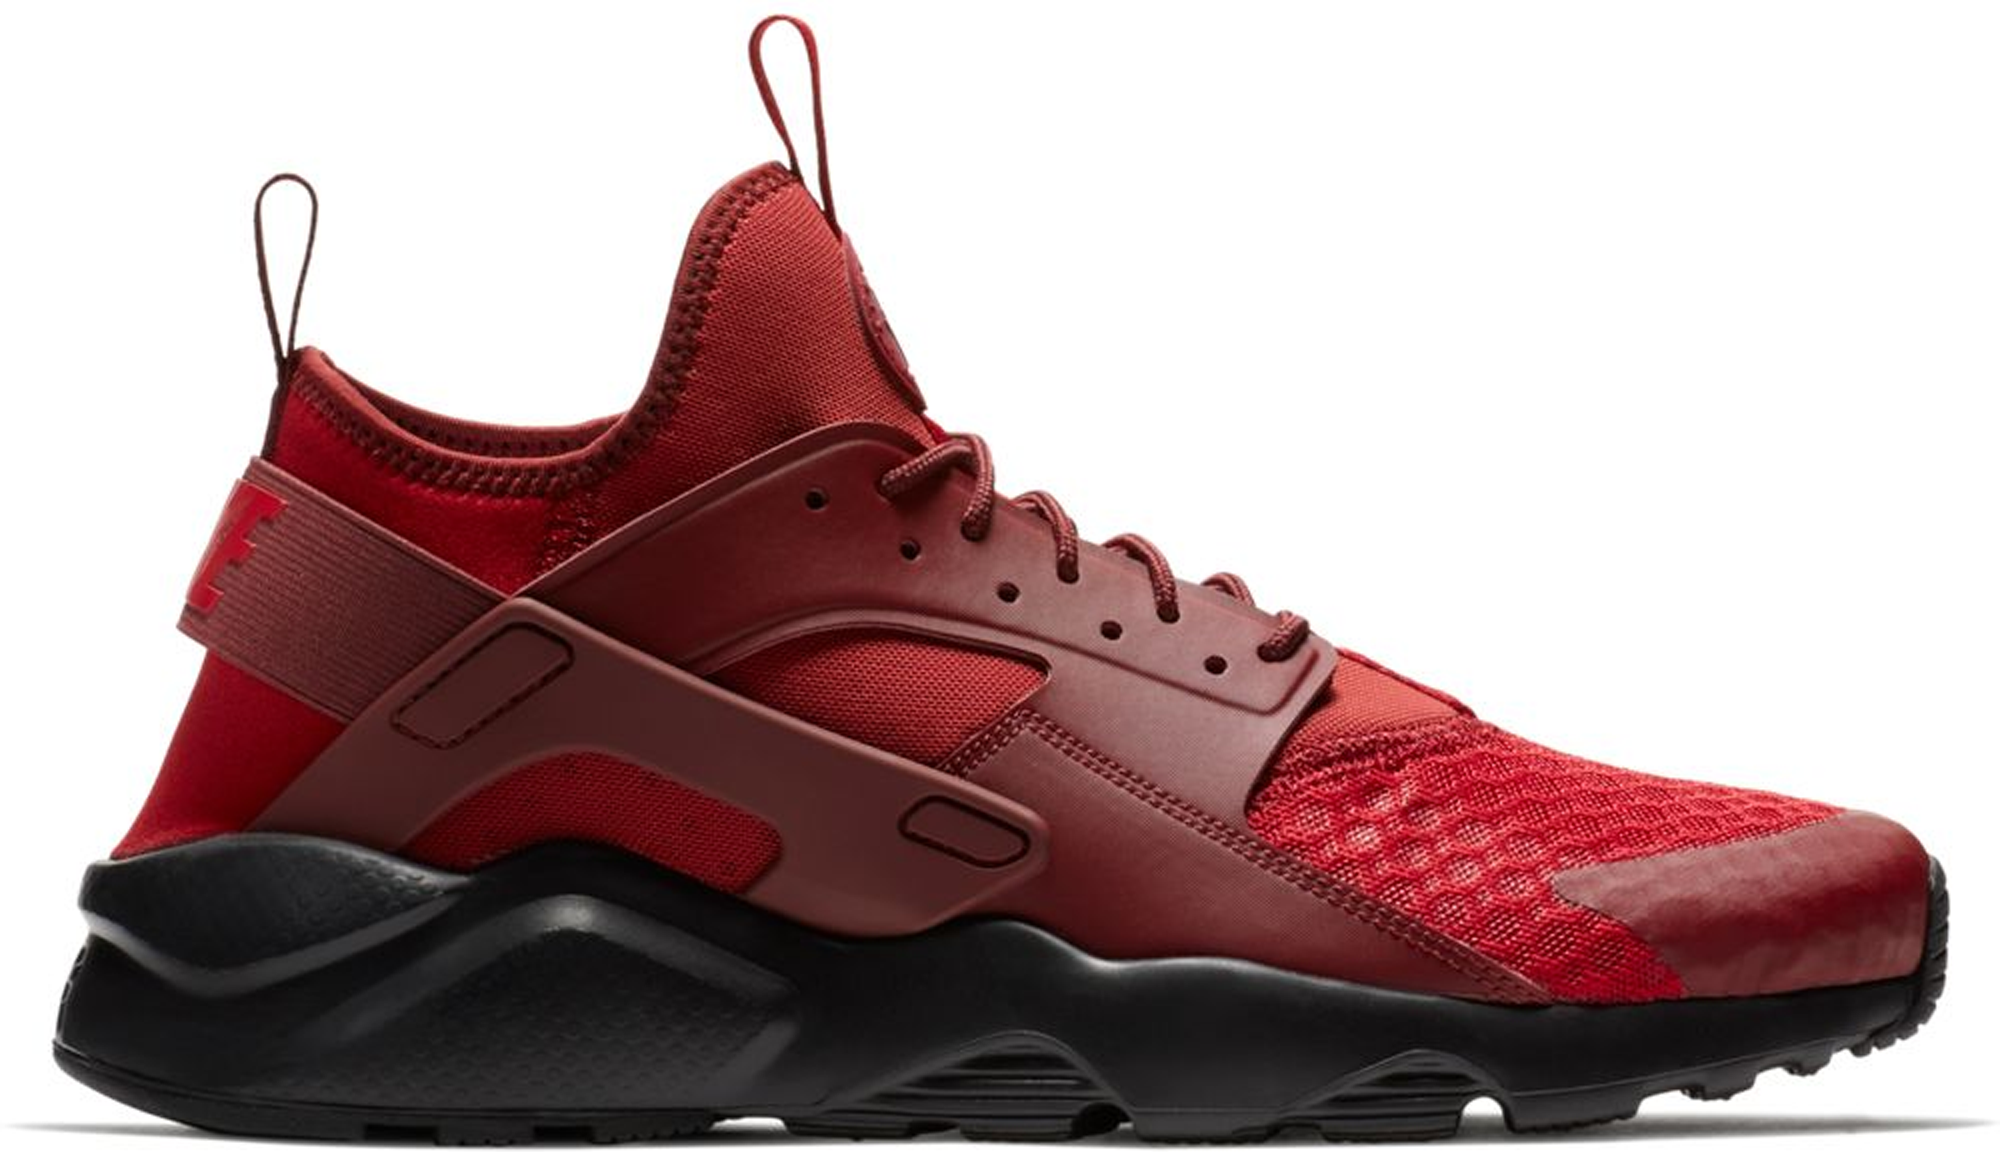 hot sale online bedb6 5bc1c ... discount code for air huarache run ultra tough red 819685 604 a2787  1636f